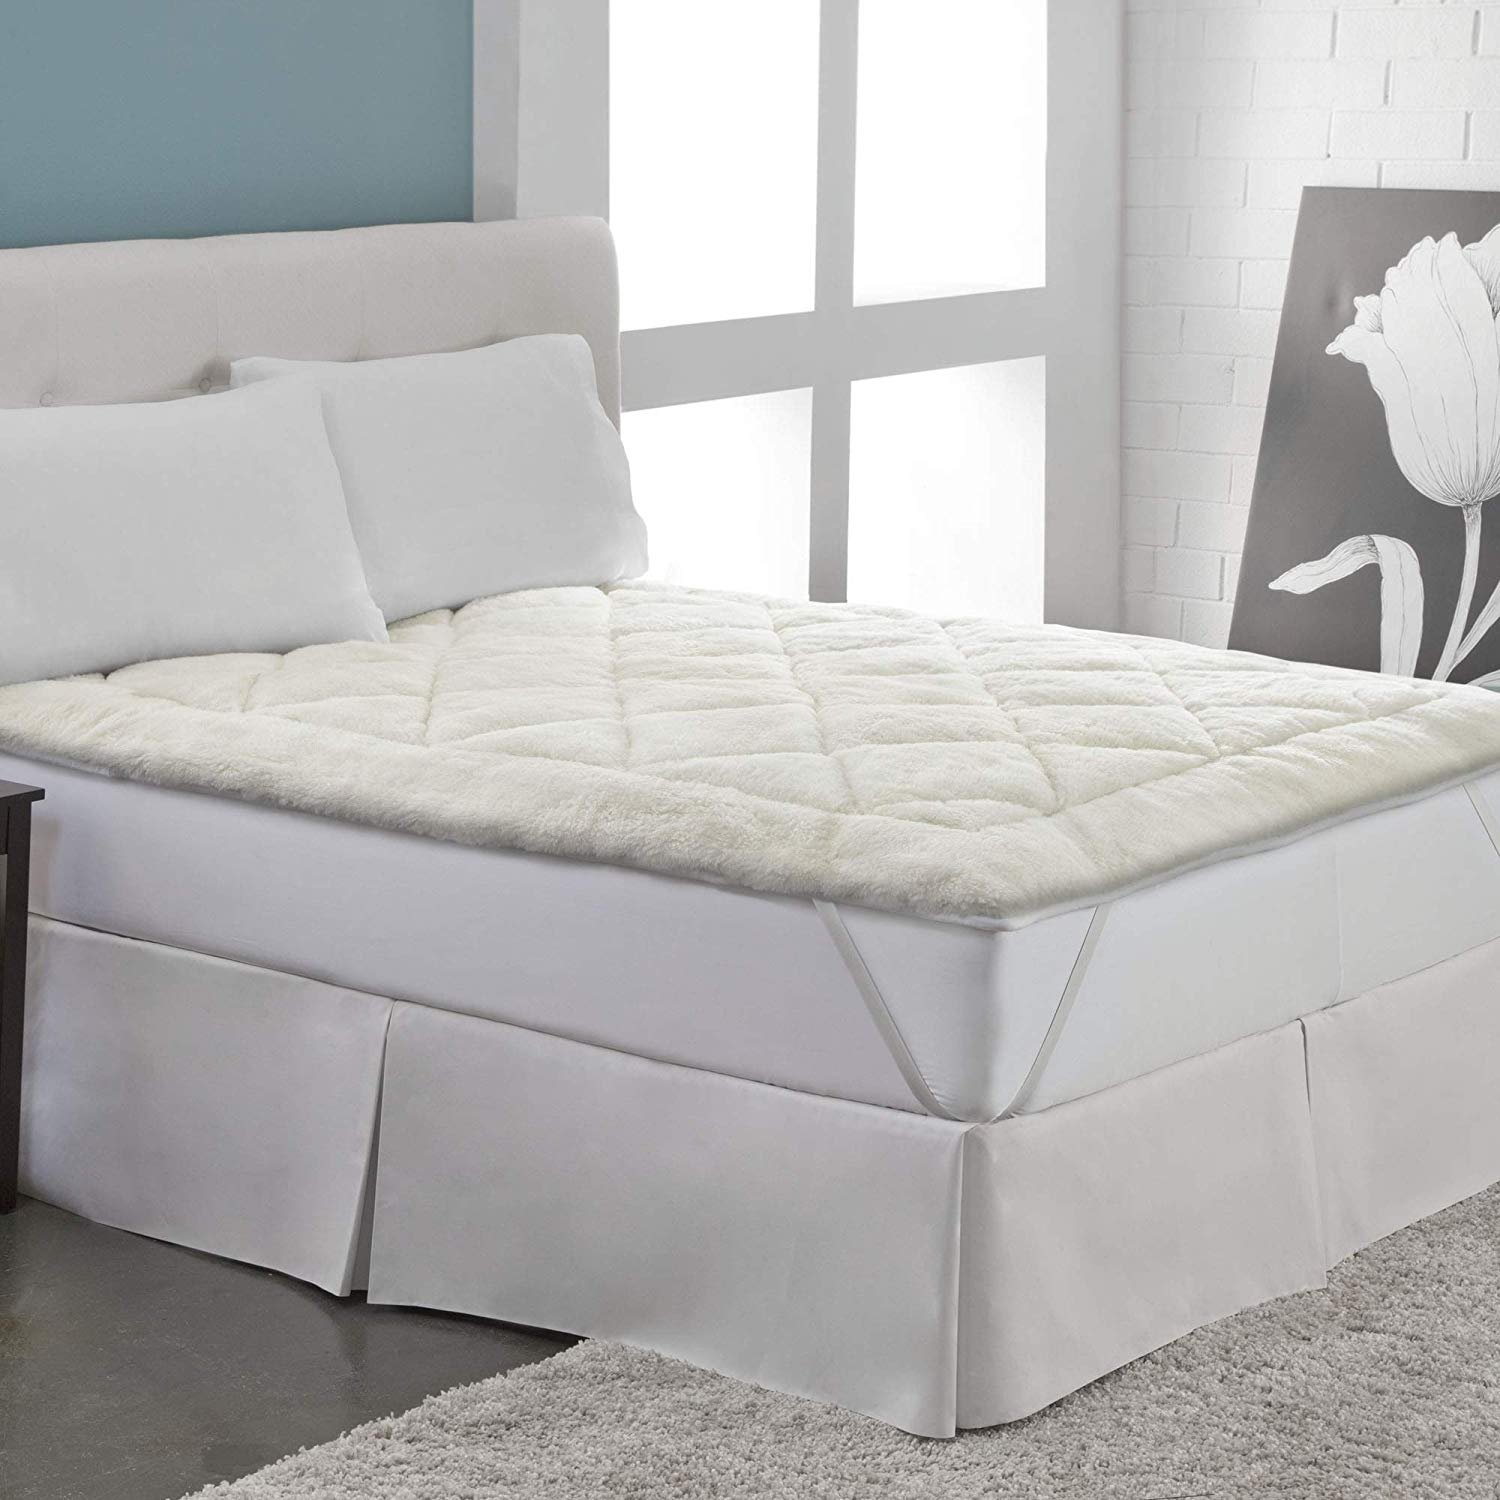 Wool Mattress Pad Reviews Wool Mattress Topper The Best Products For 2019 Snoremagazine